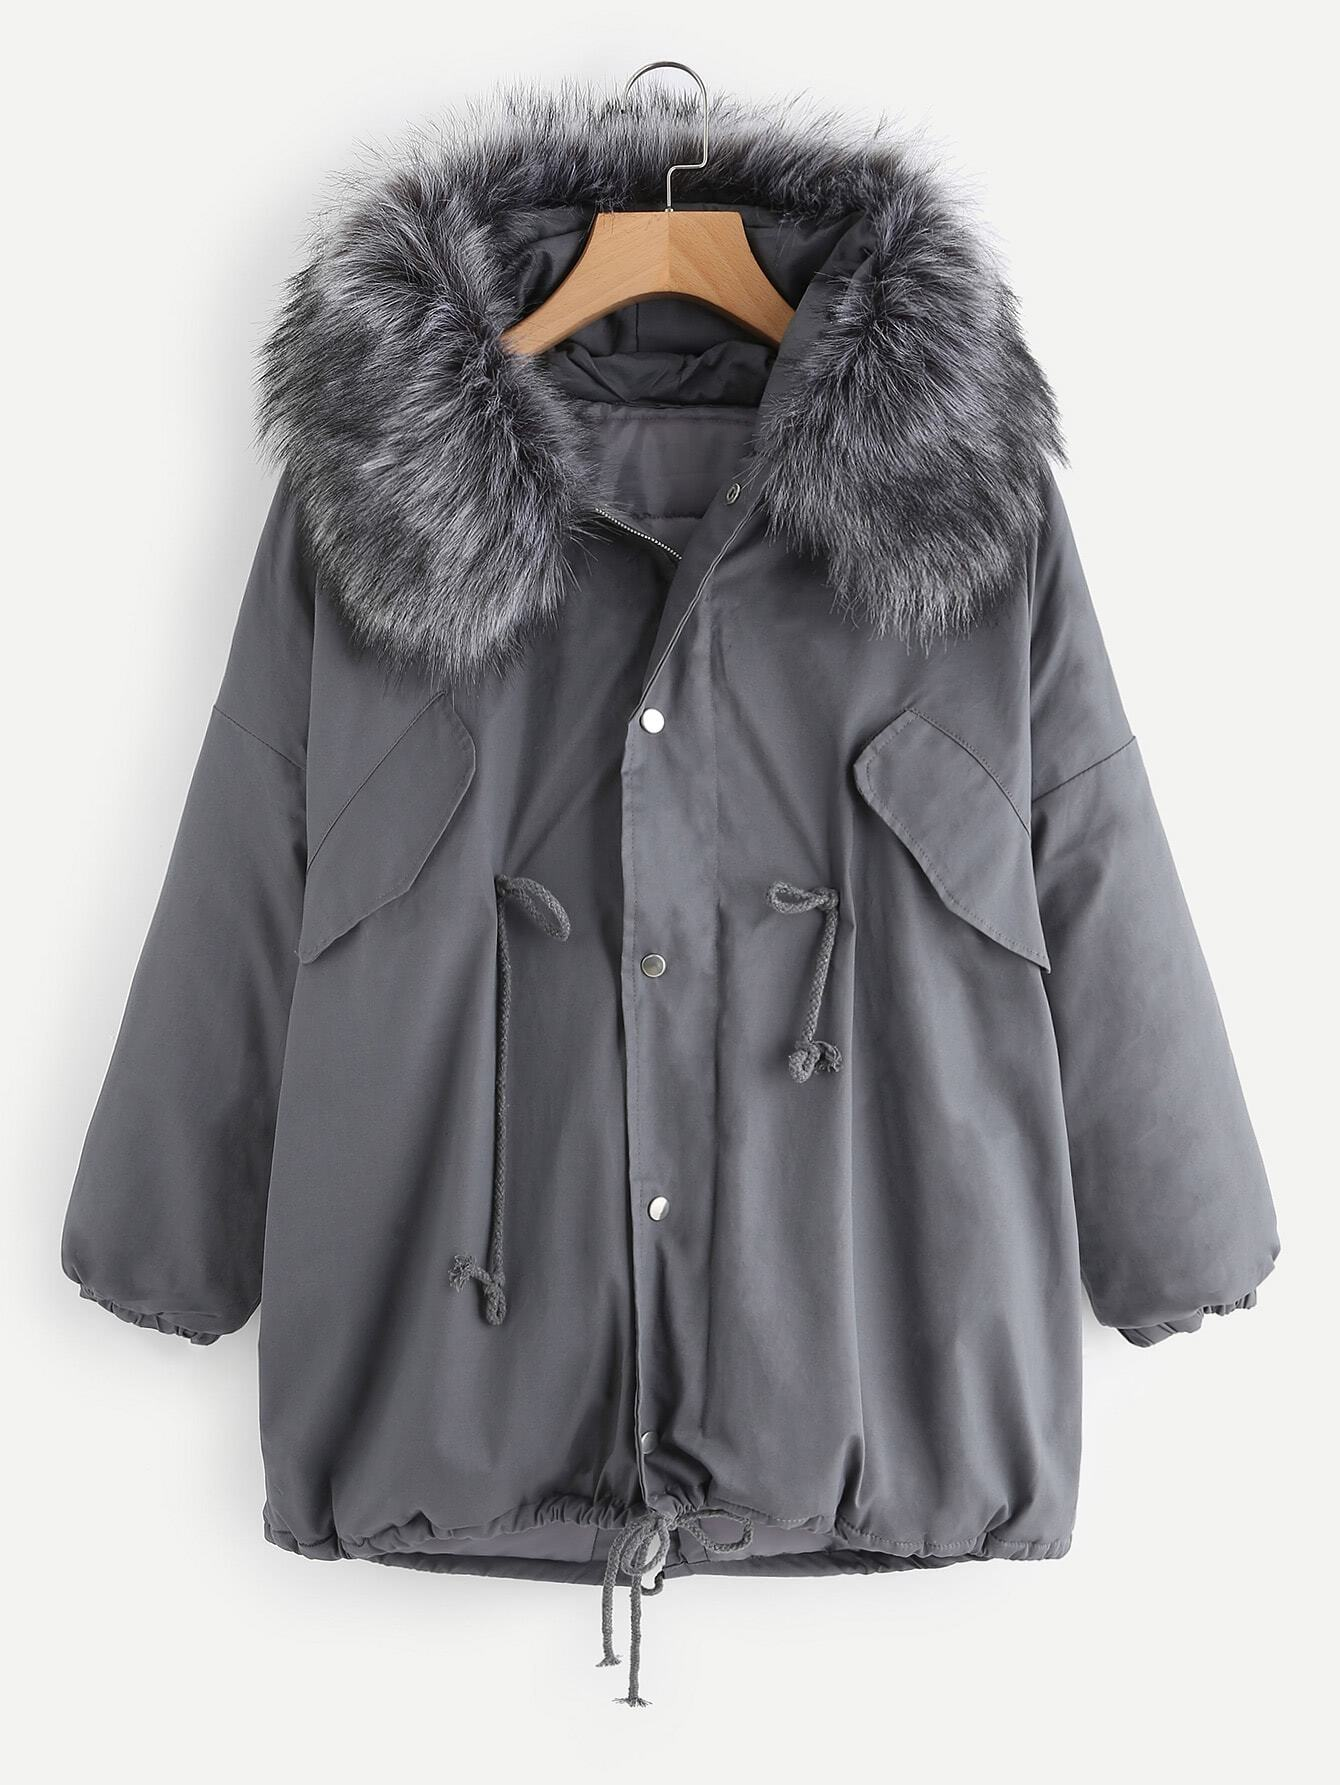 Contrast Faux Fur Hooded Parka Coat outer171107130